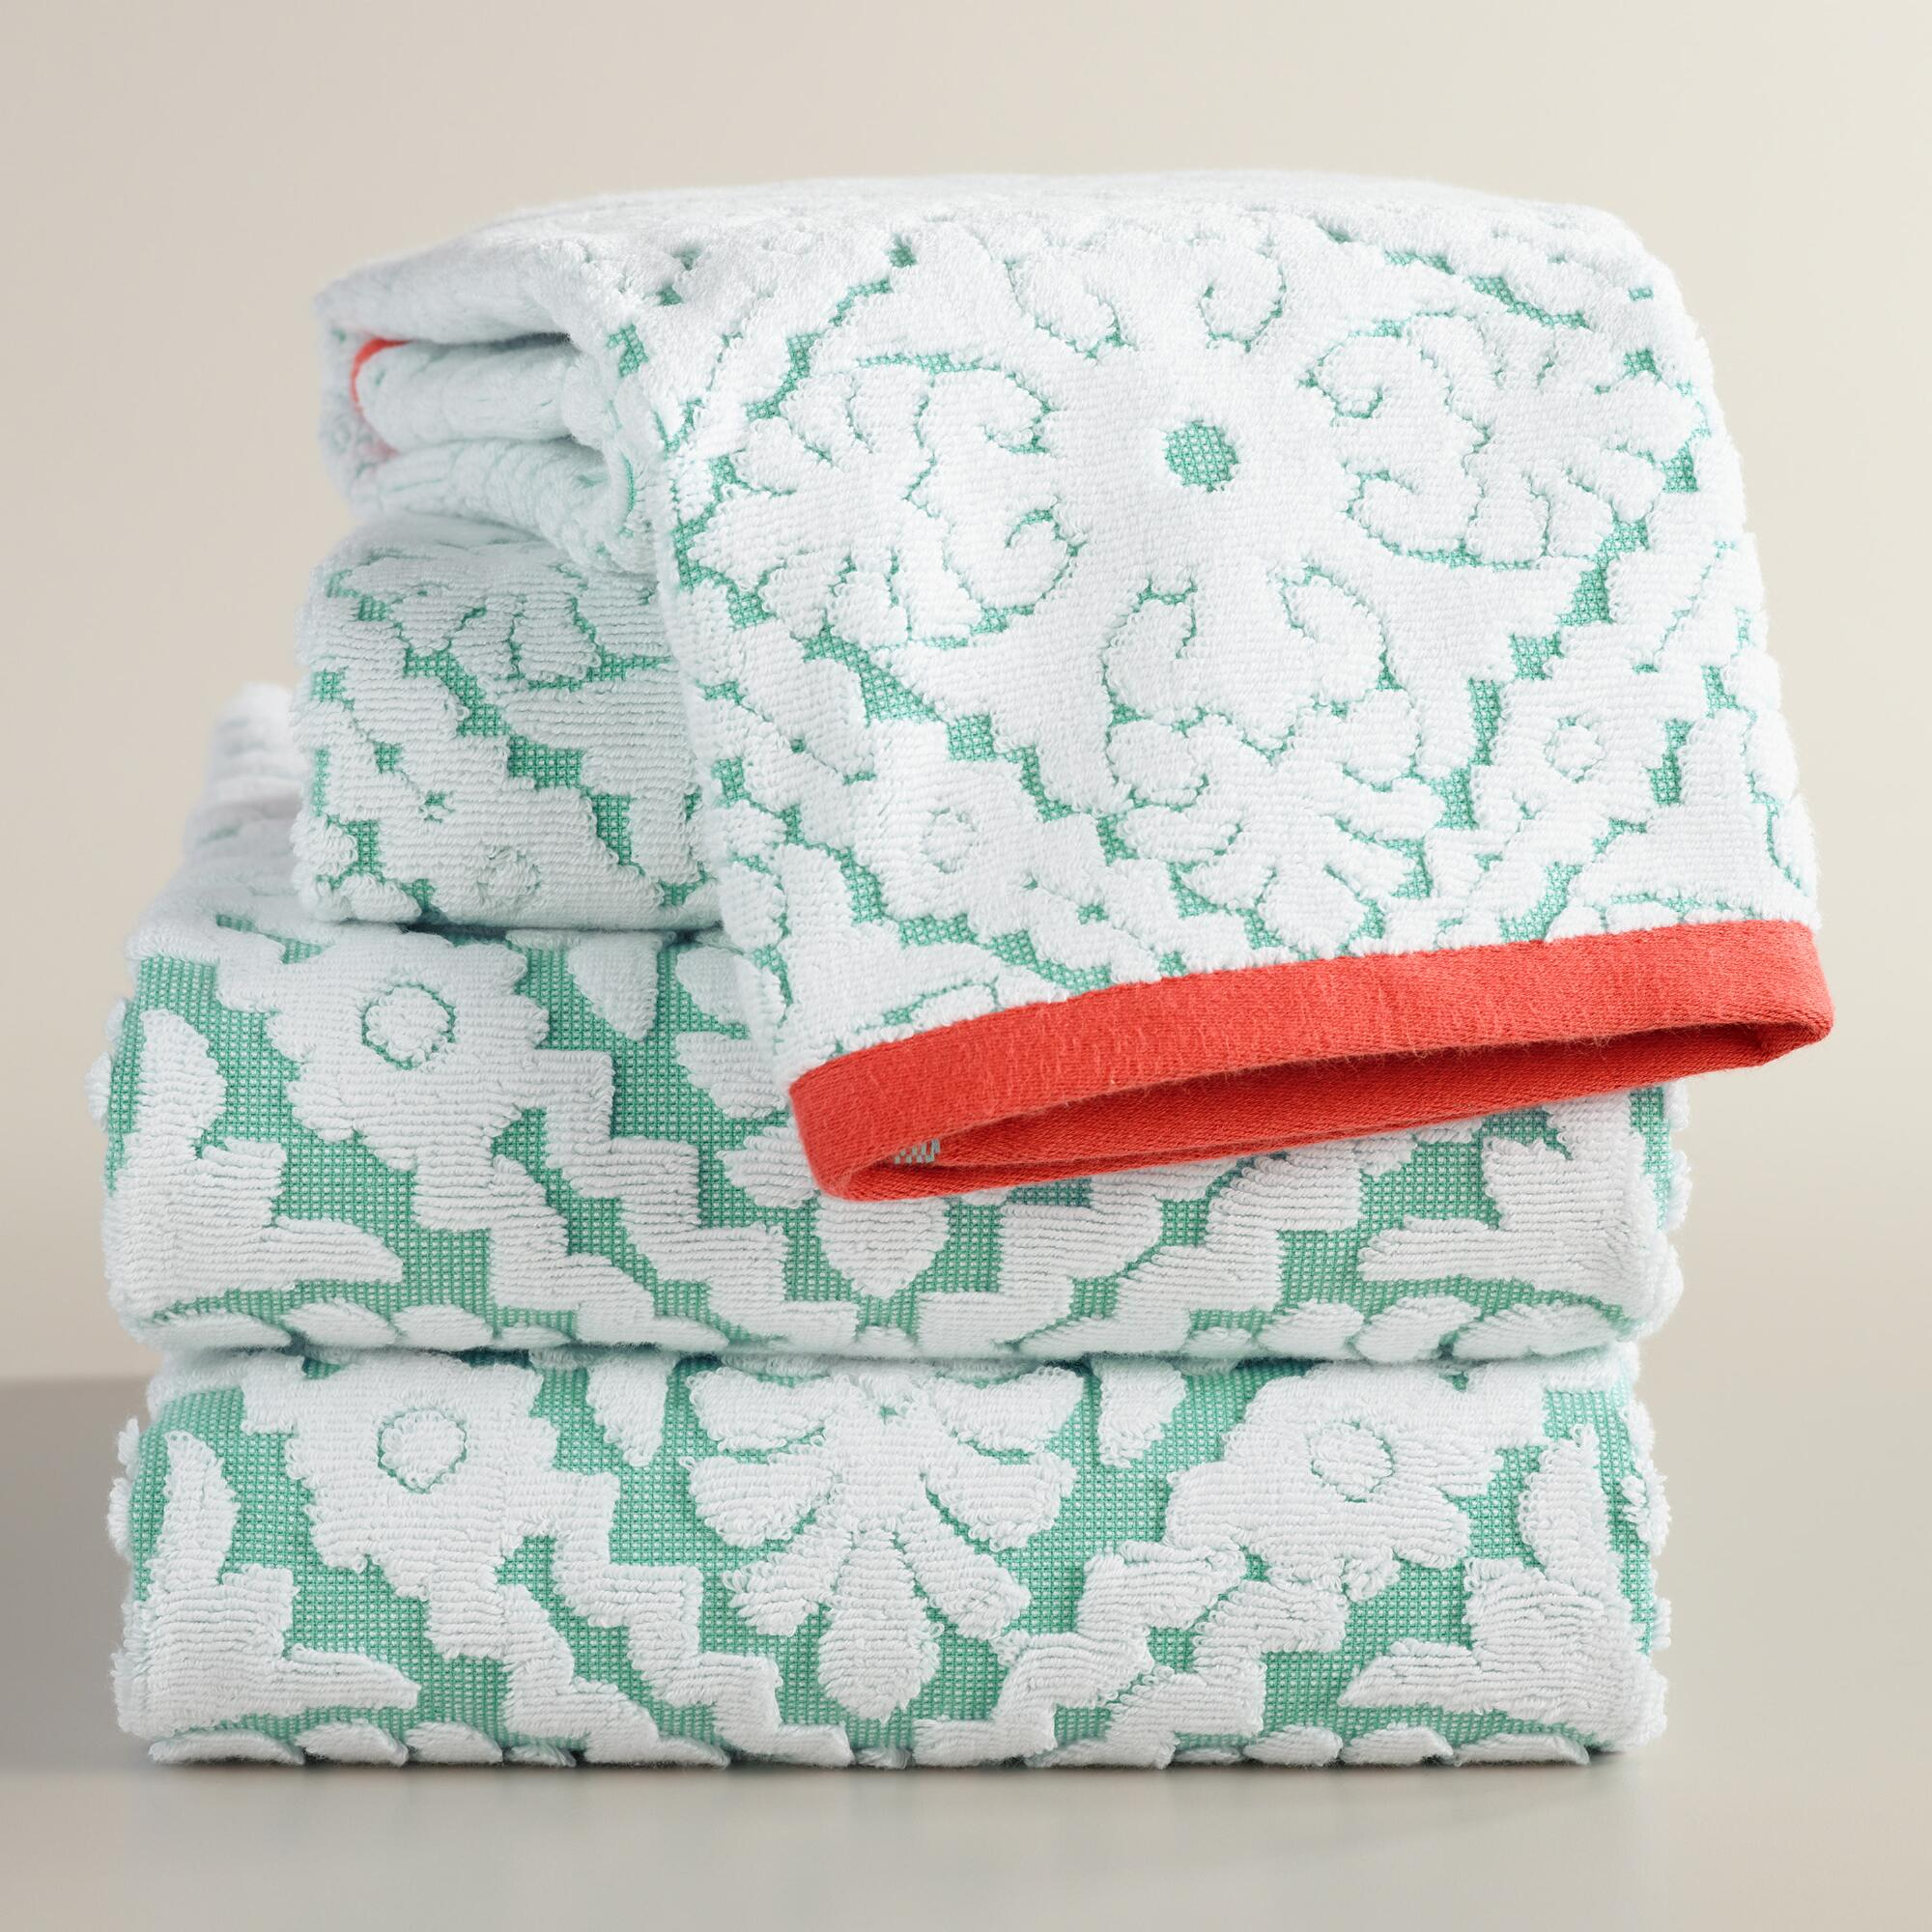 Aqua and Coral Barcelona Tile Sculpted Towel Collection